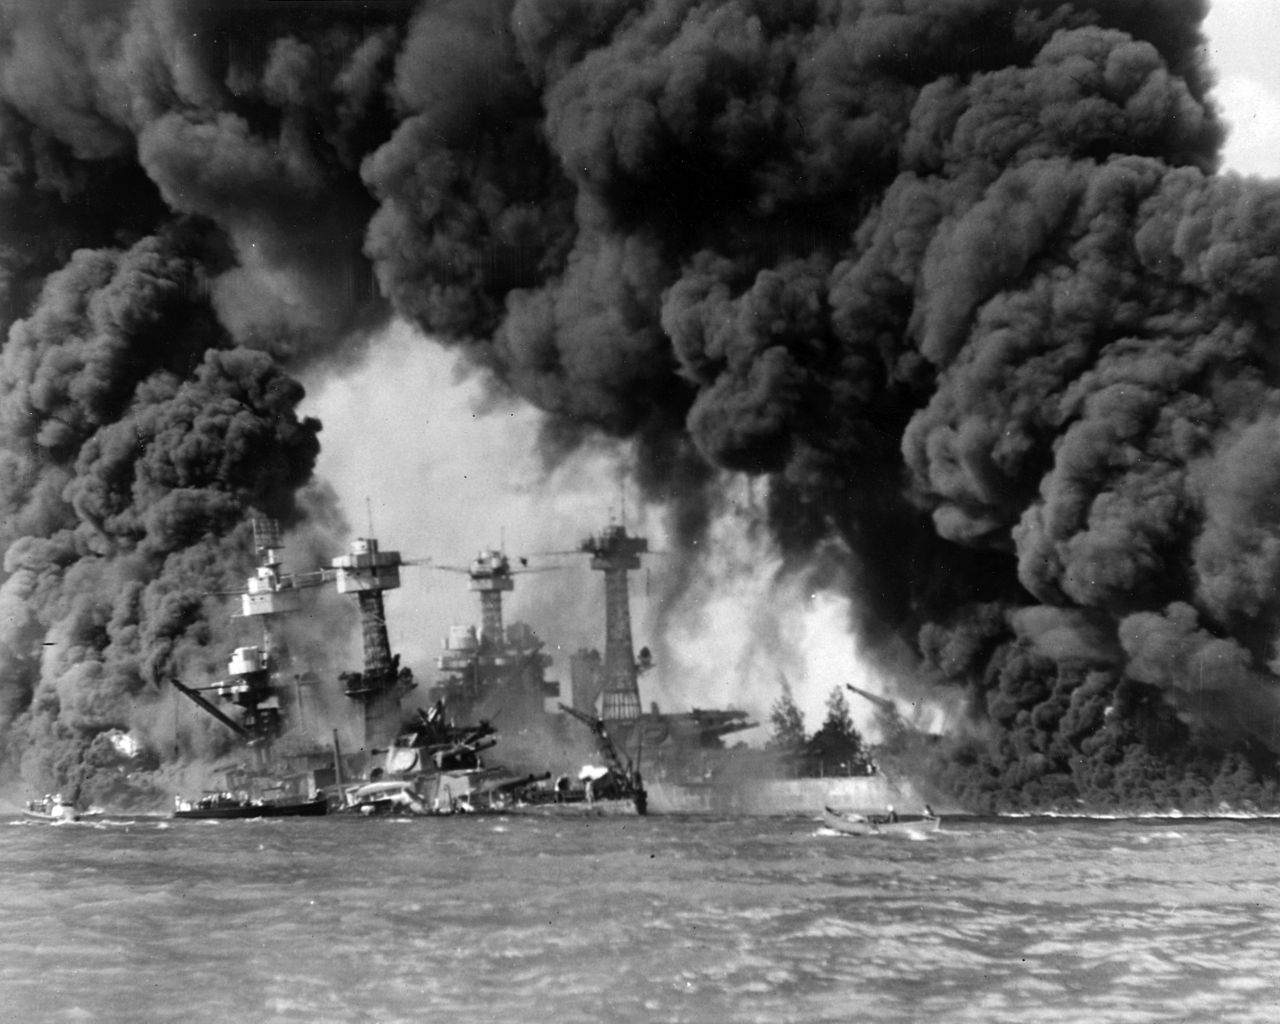 Dark smoke and flames billow over the remains of navy ships while small boat loads of sailors look on.